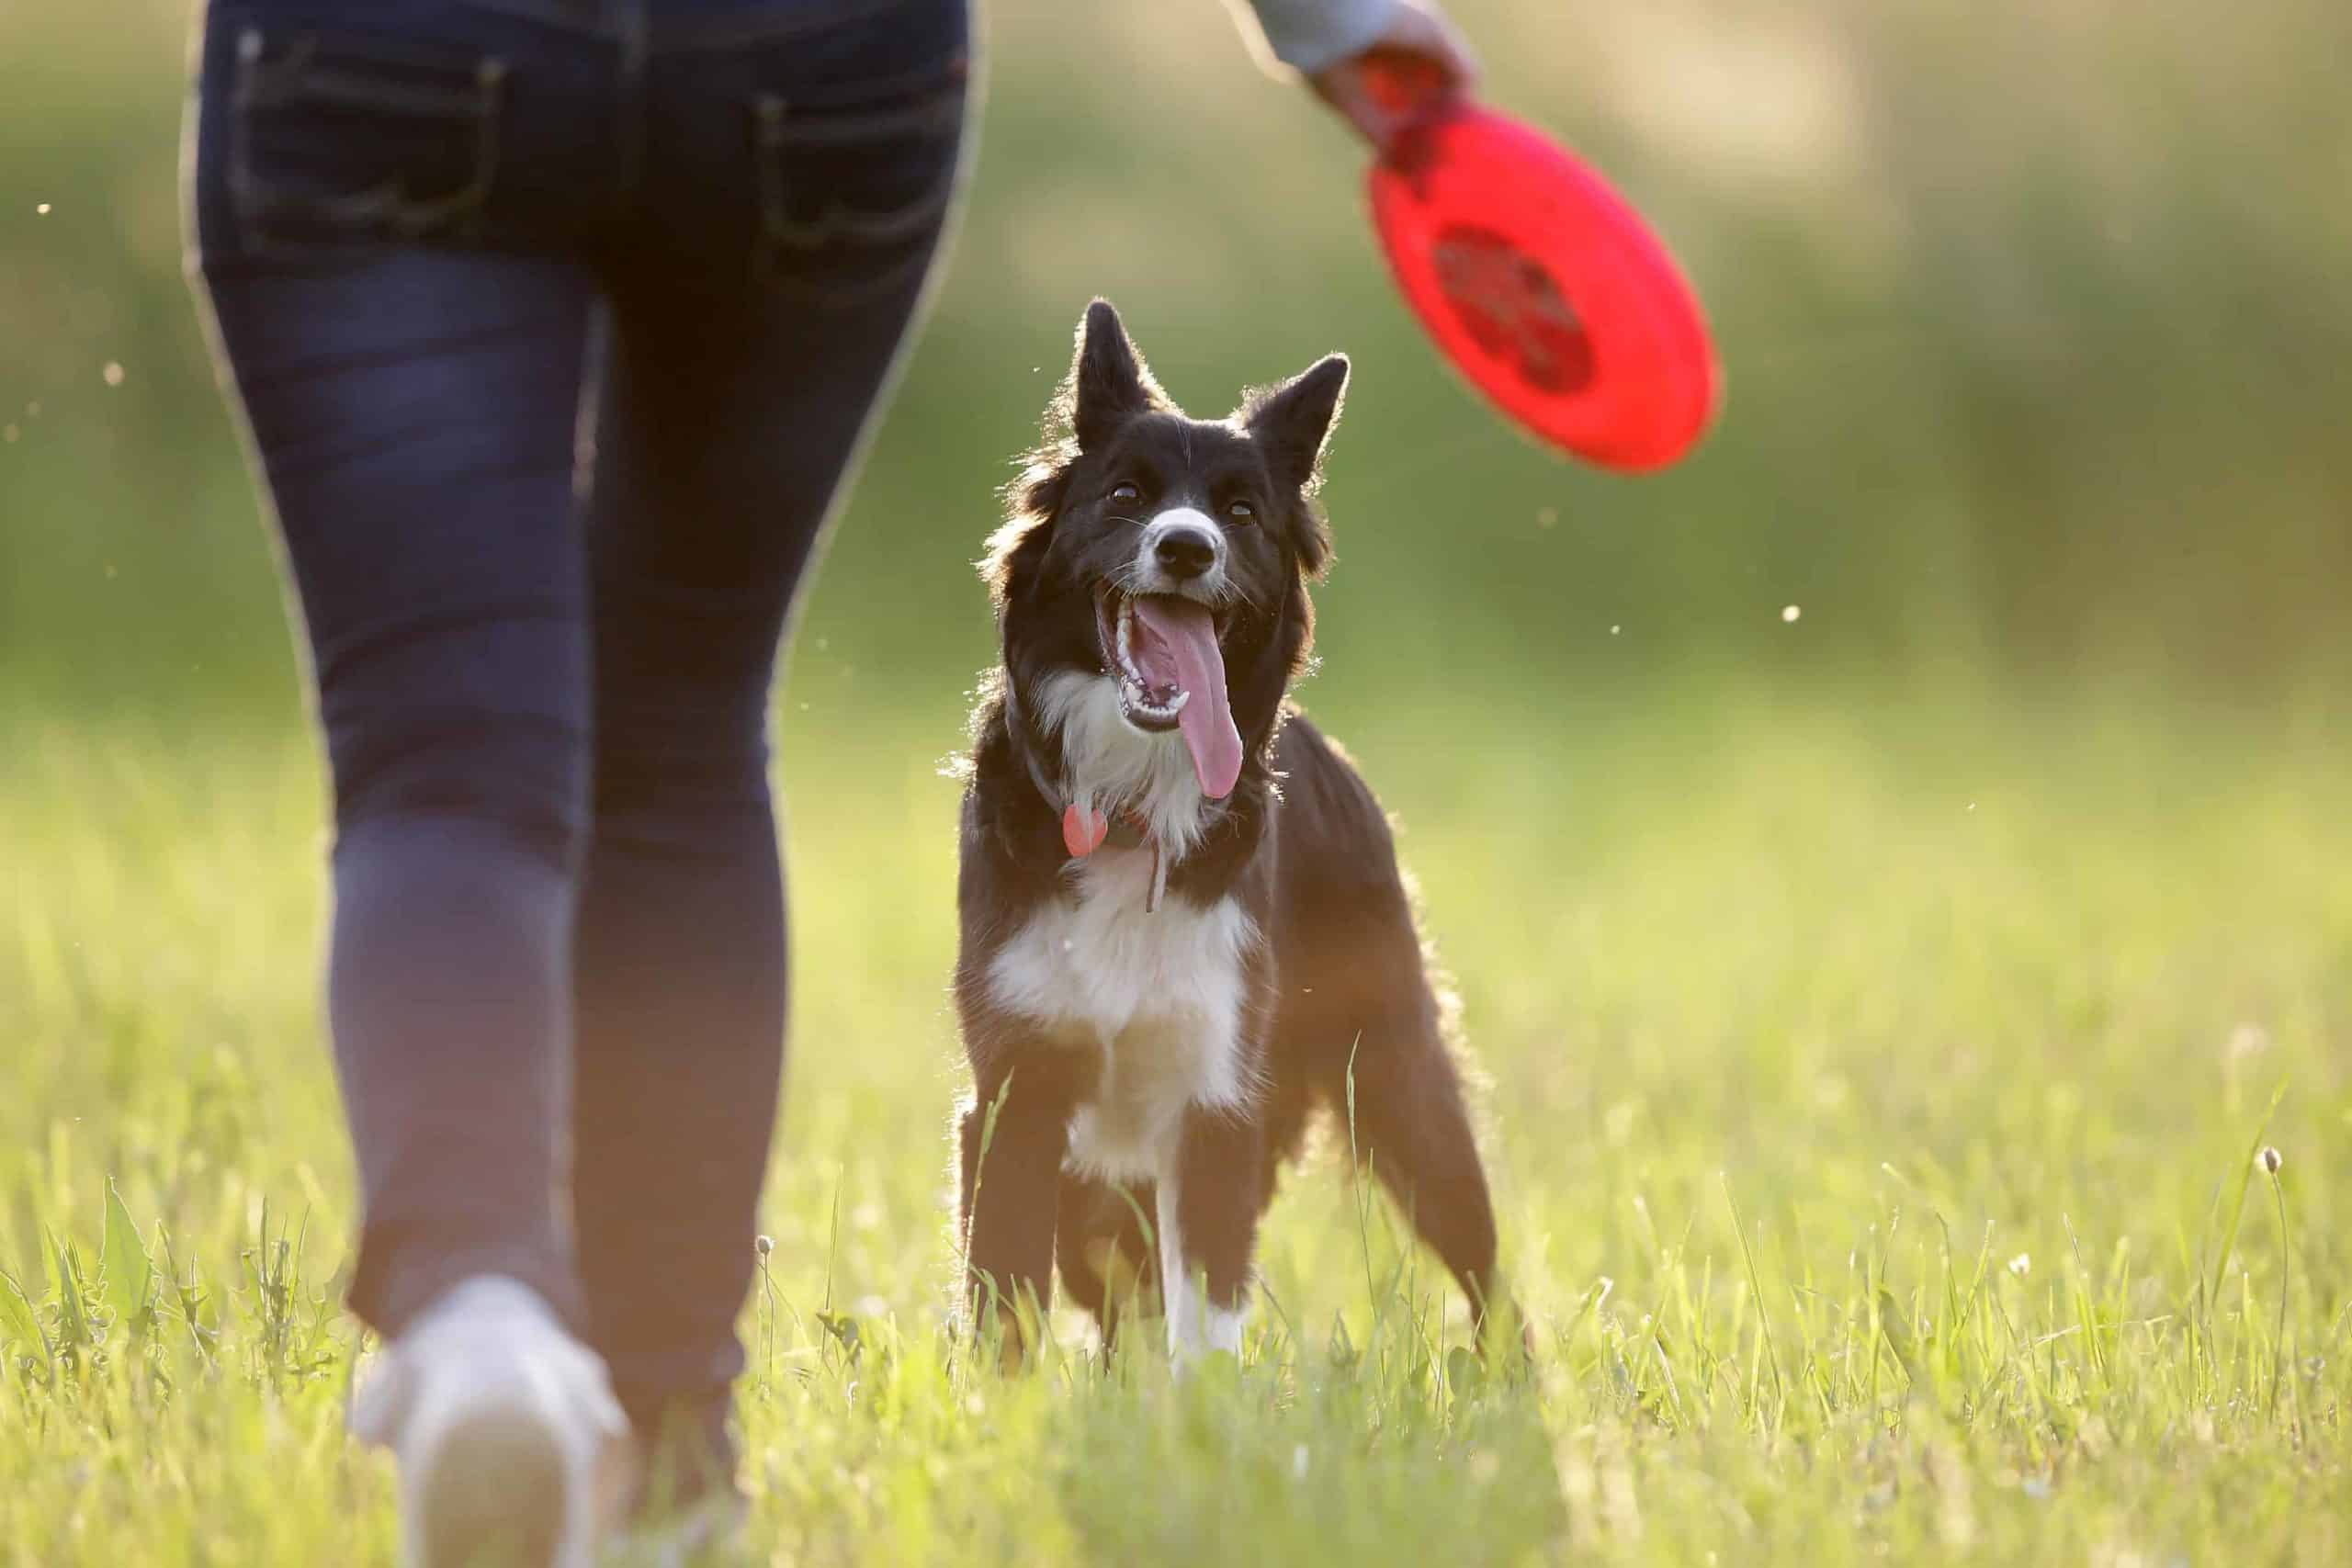 Owner plays frisbee with border collie. Follow practical tips to keep your dog happy and healthy. Provide healthy food, plenty of water and daily exercise.